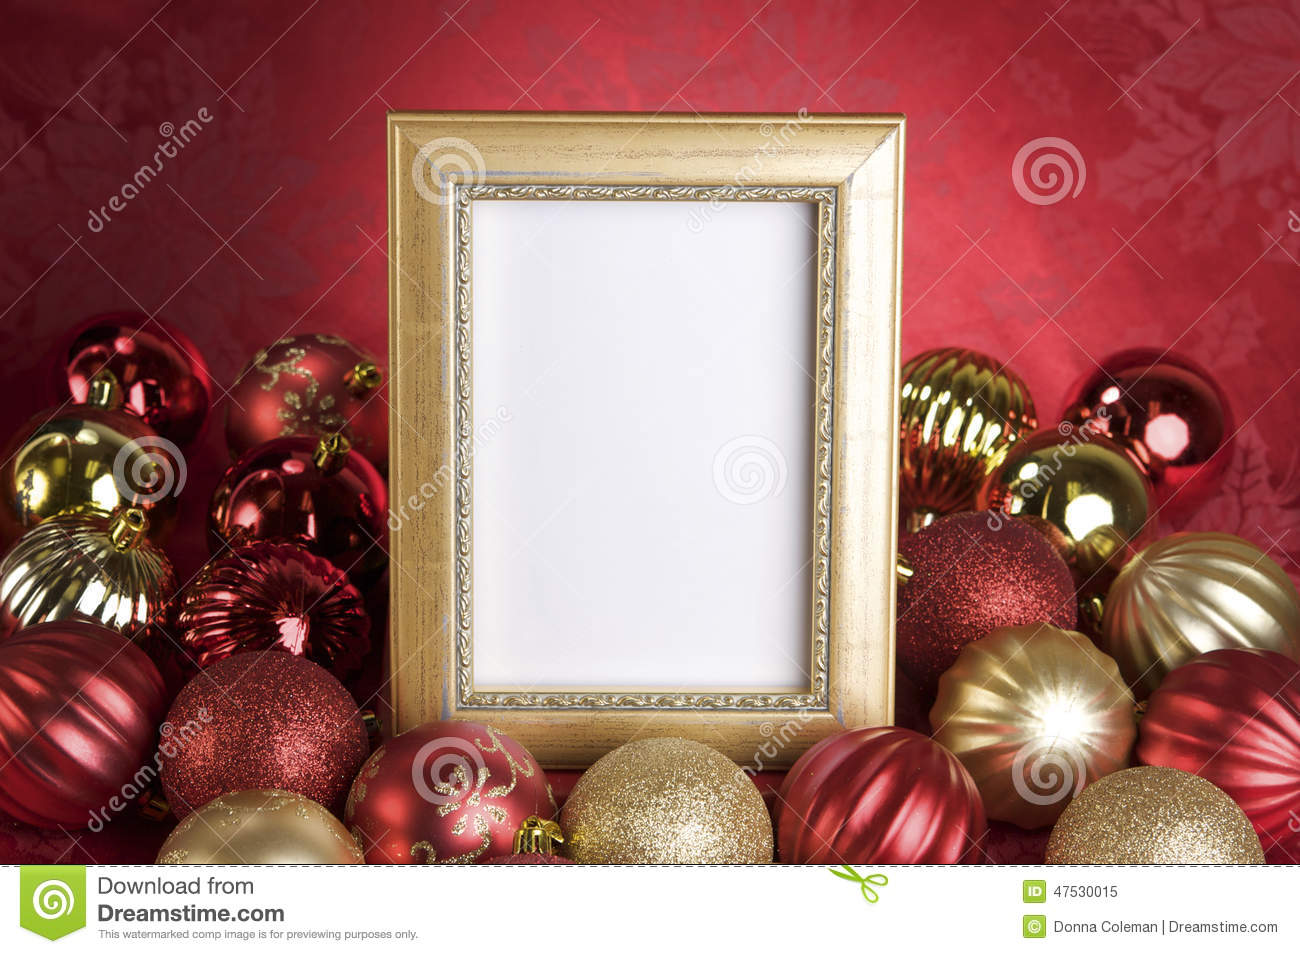 Christmas ornament frames - Picture Frame Christmas Ornaments Empty Gold Frame With Christmas Ornaments On A Red Background Royalty